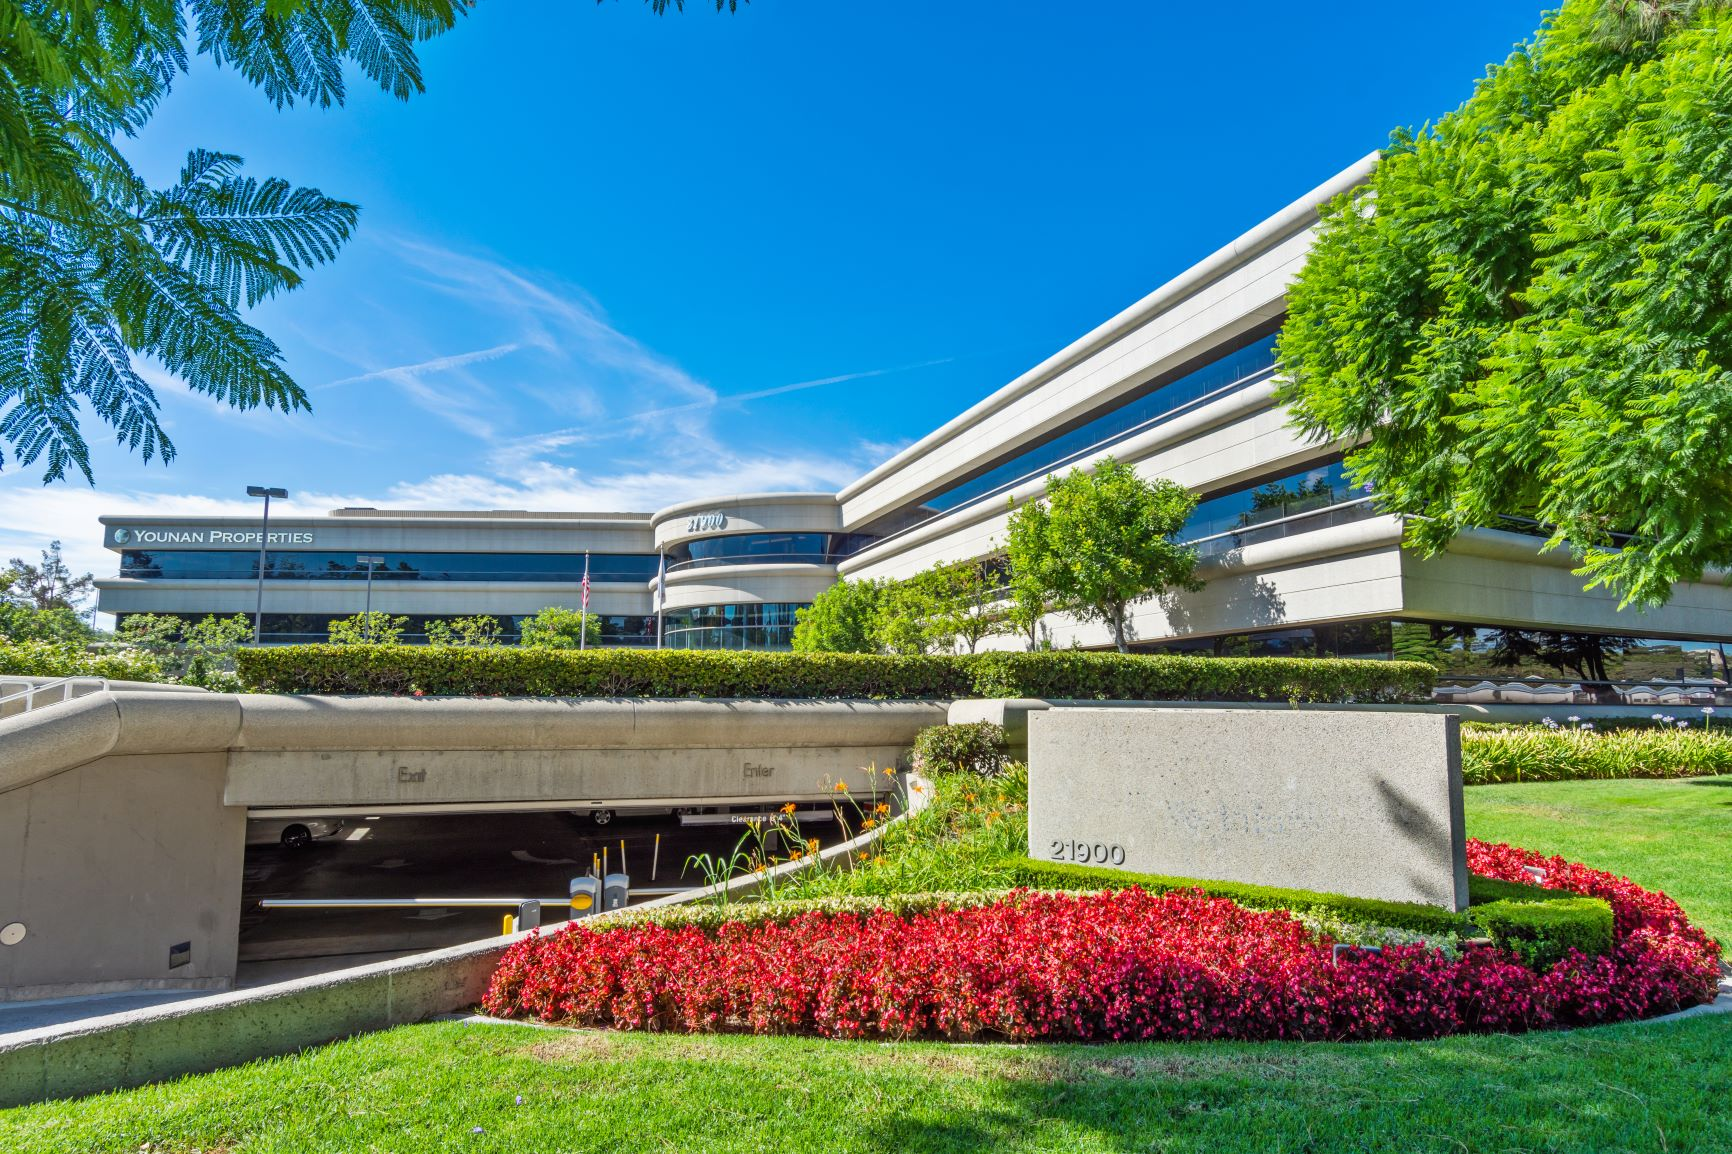 Burbank Corporate Center